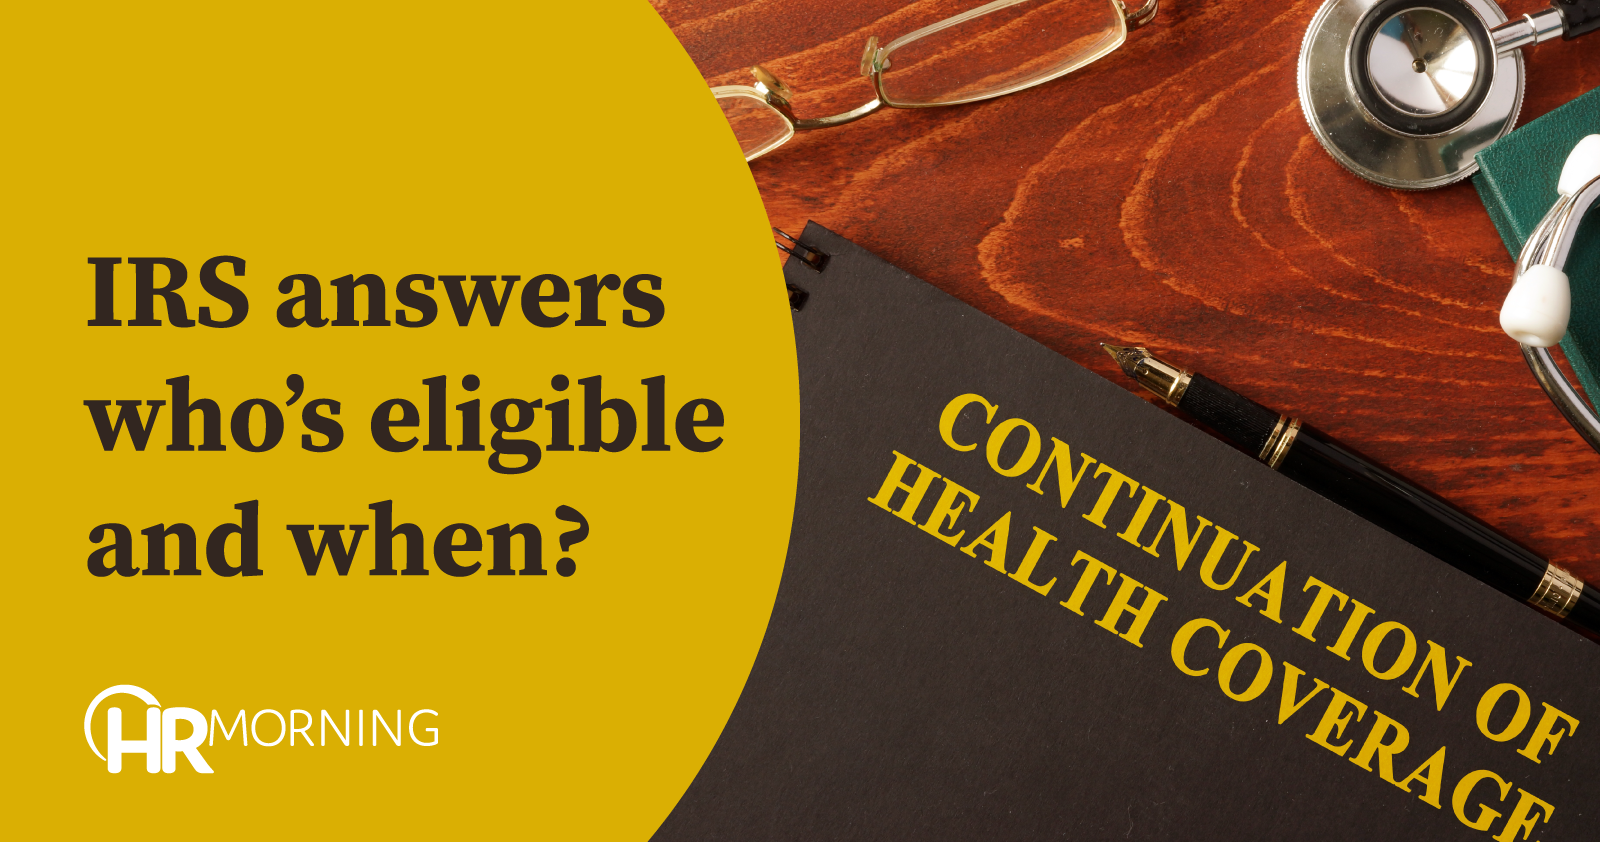 IRS answers who is eligible and when